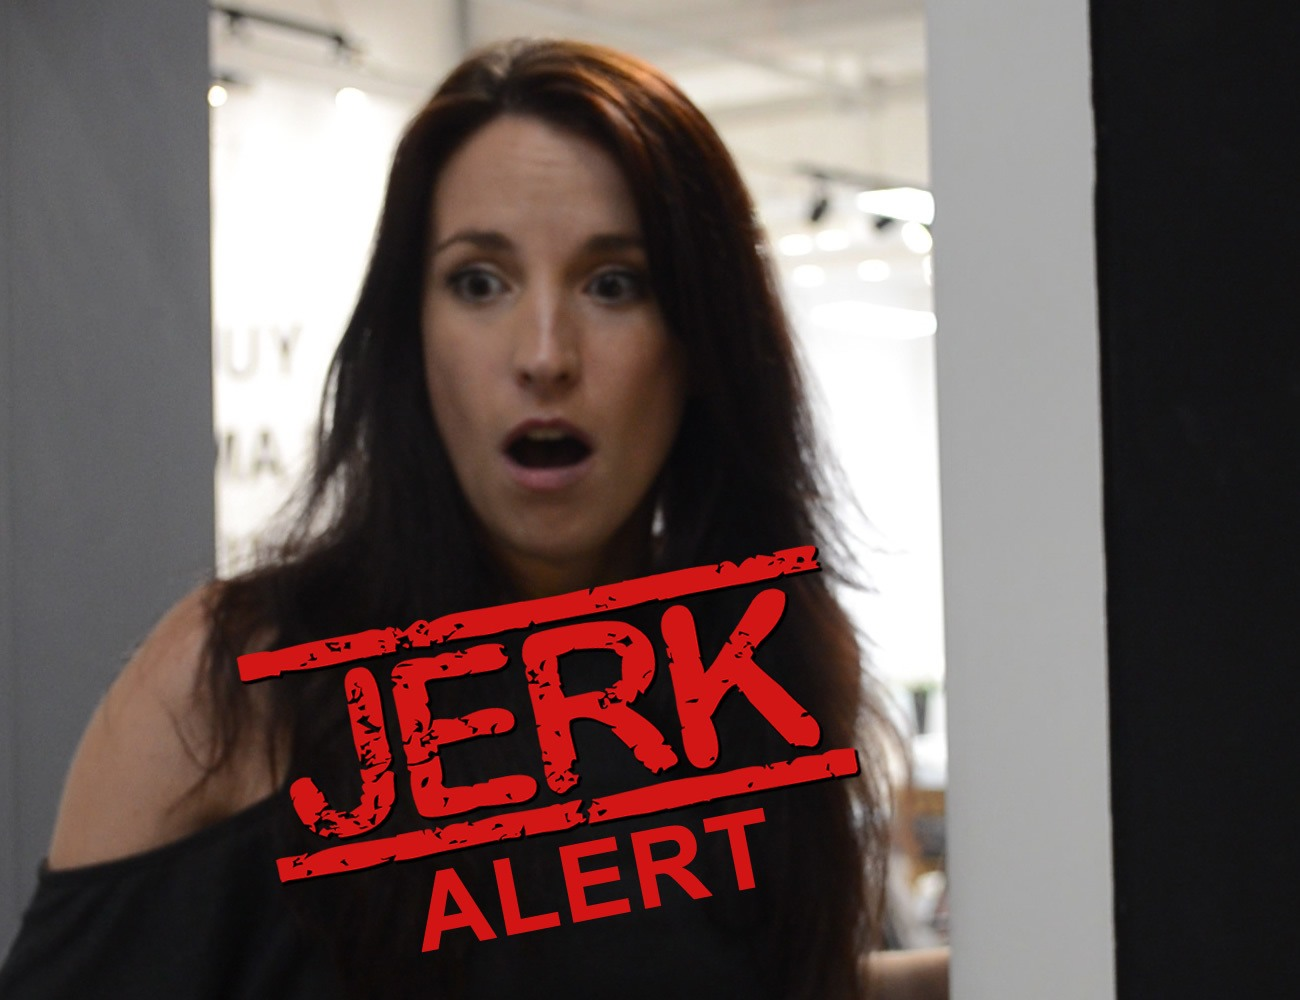 Jerk Alert – Worlds First IoT Intruder System